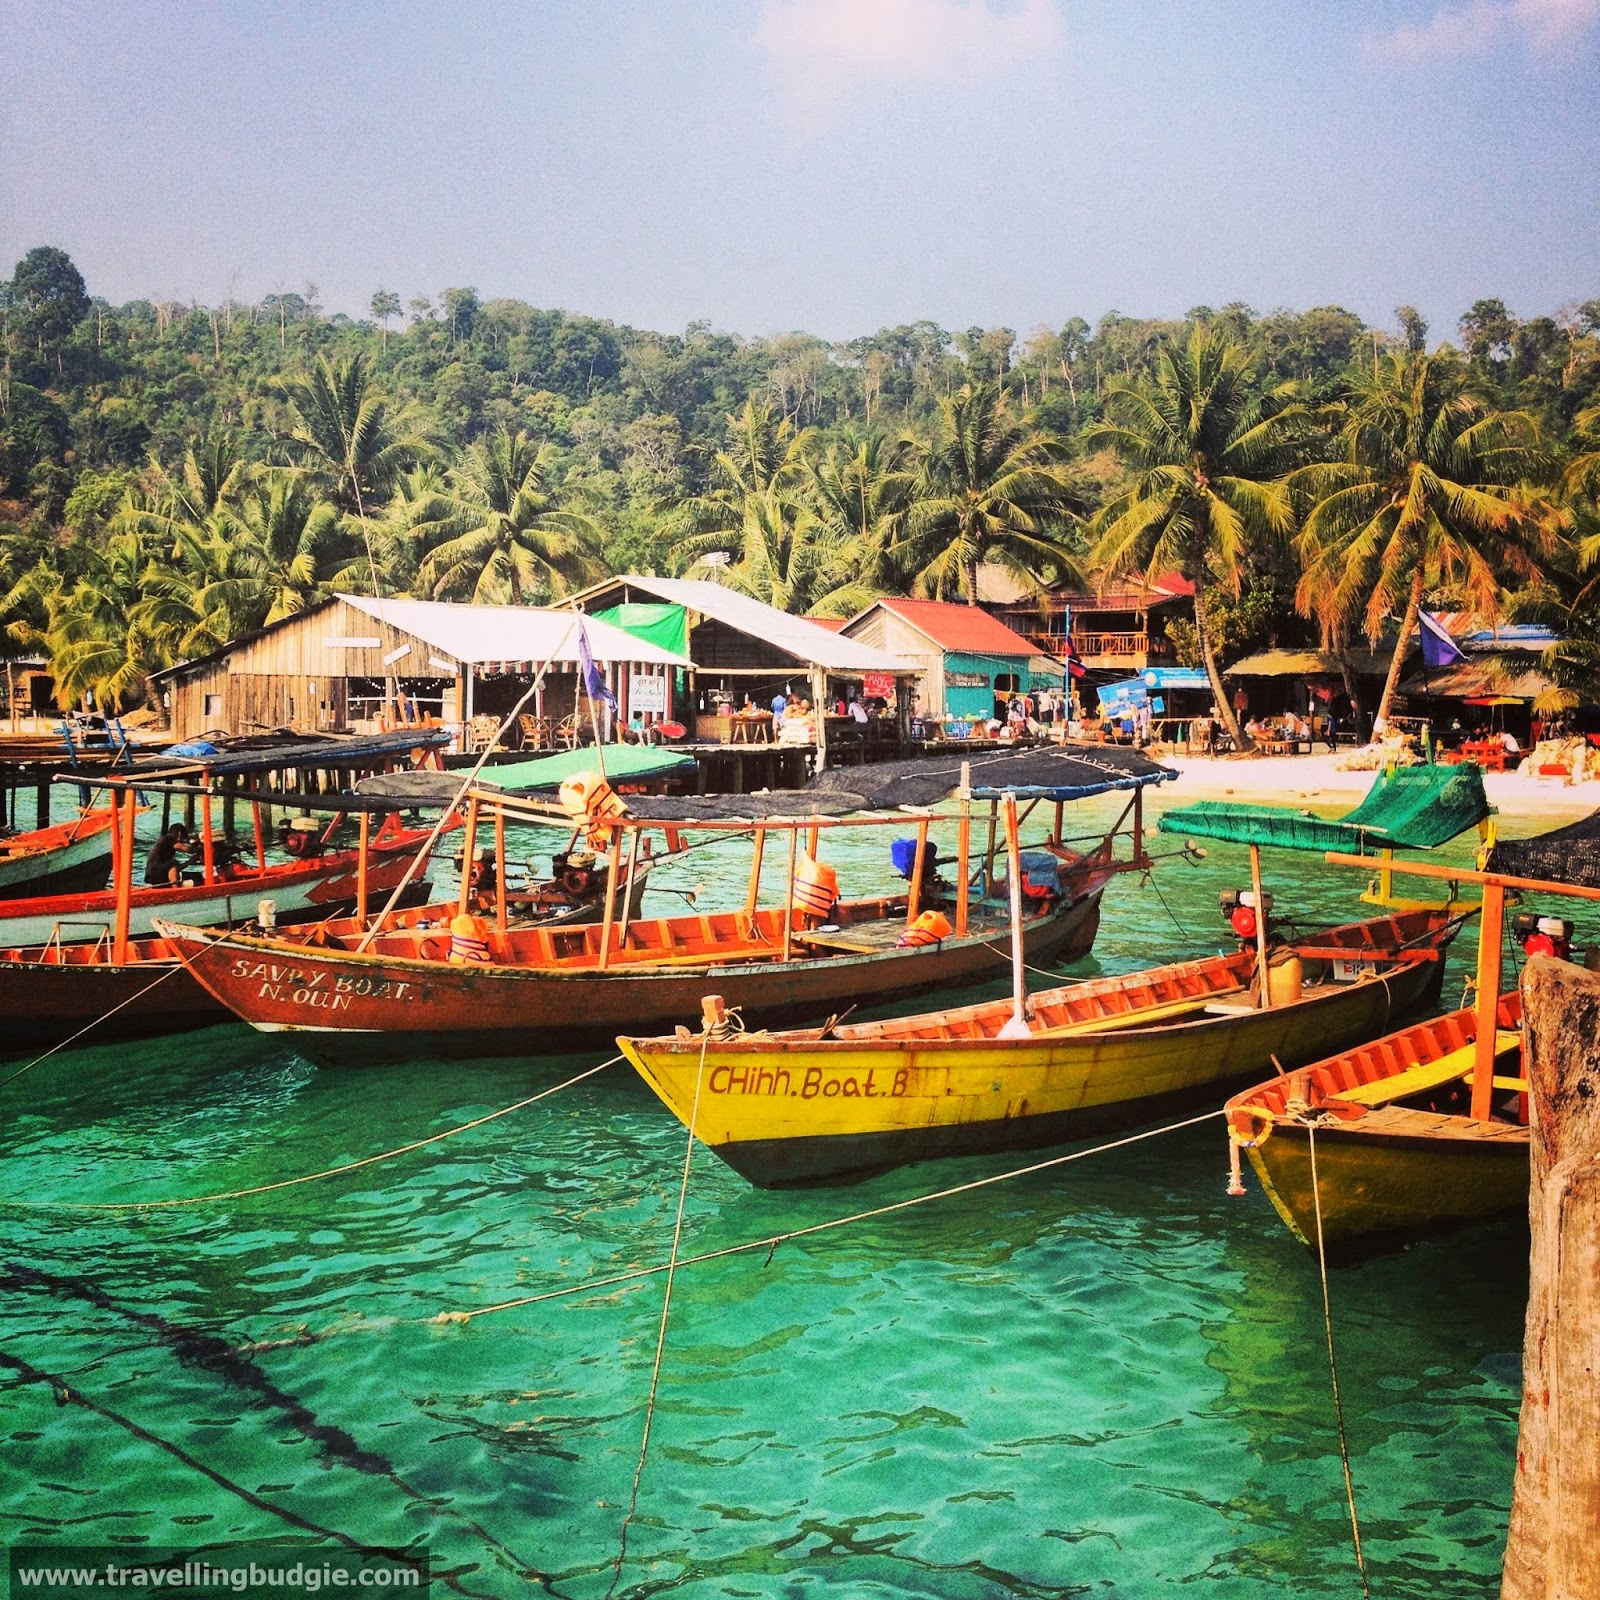 Travelling Budgie: Sihanoukville